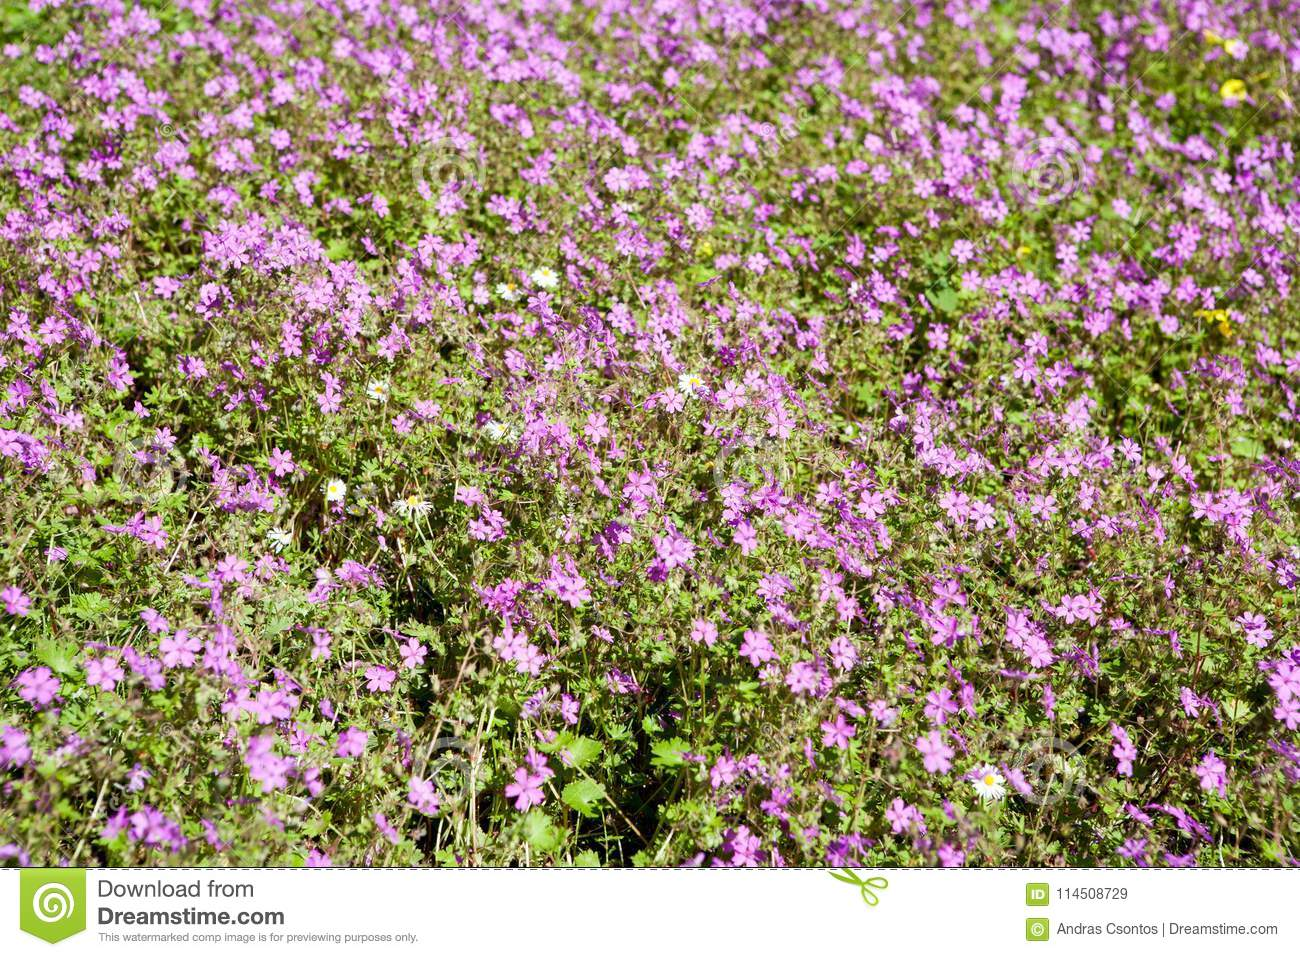 Lots of small purple flowers on a meadow for backgrounds